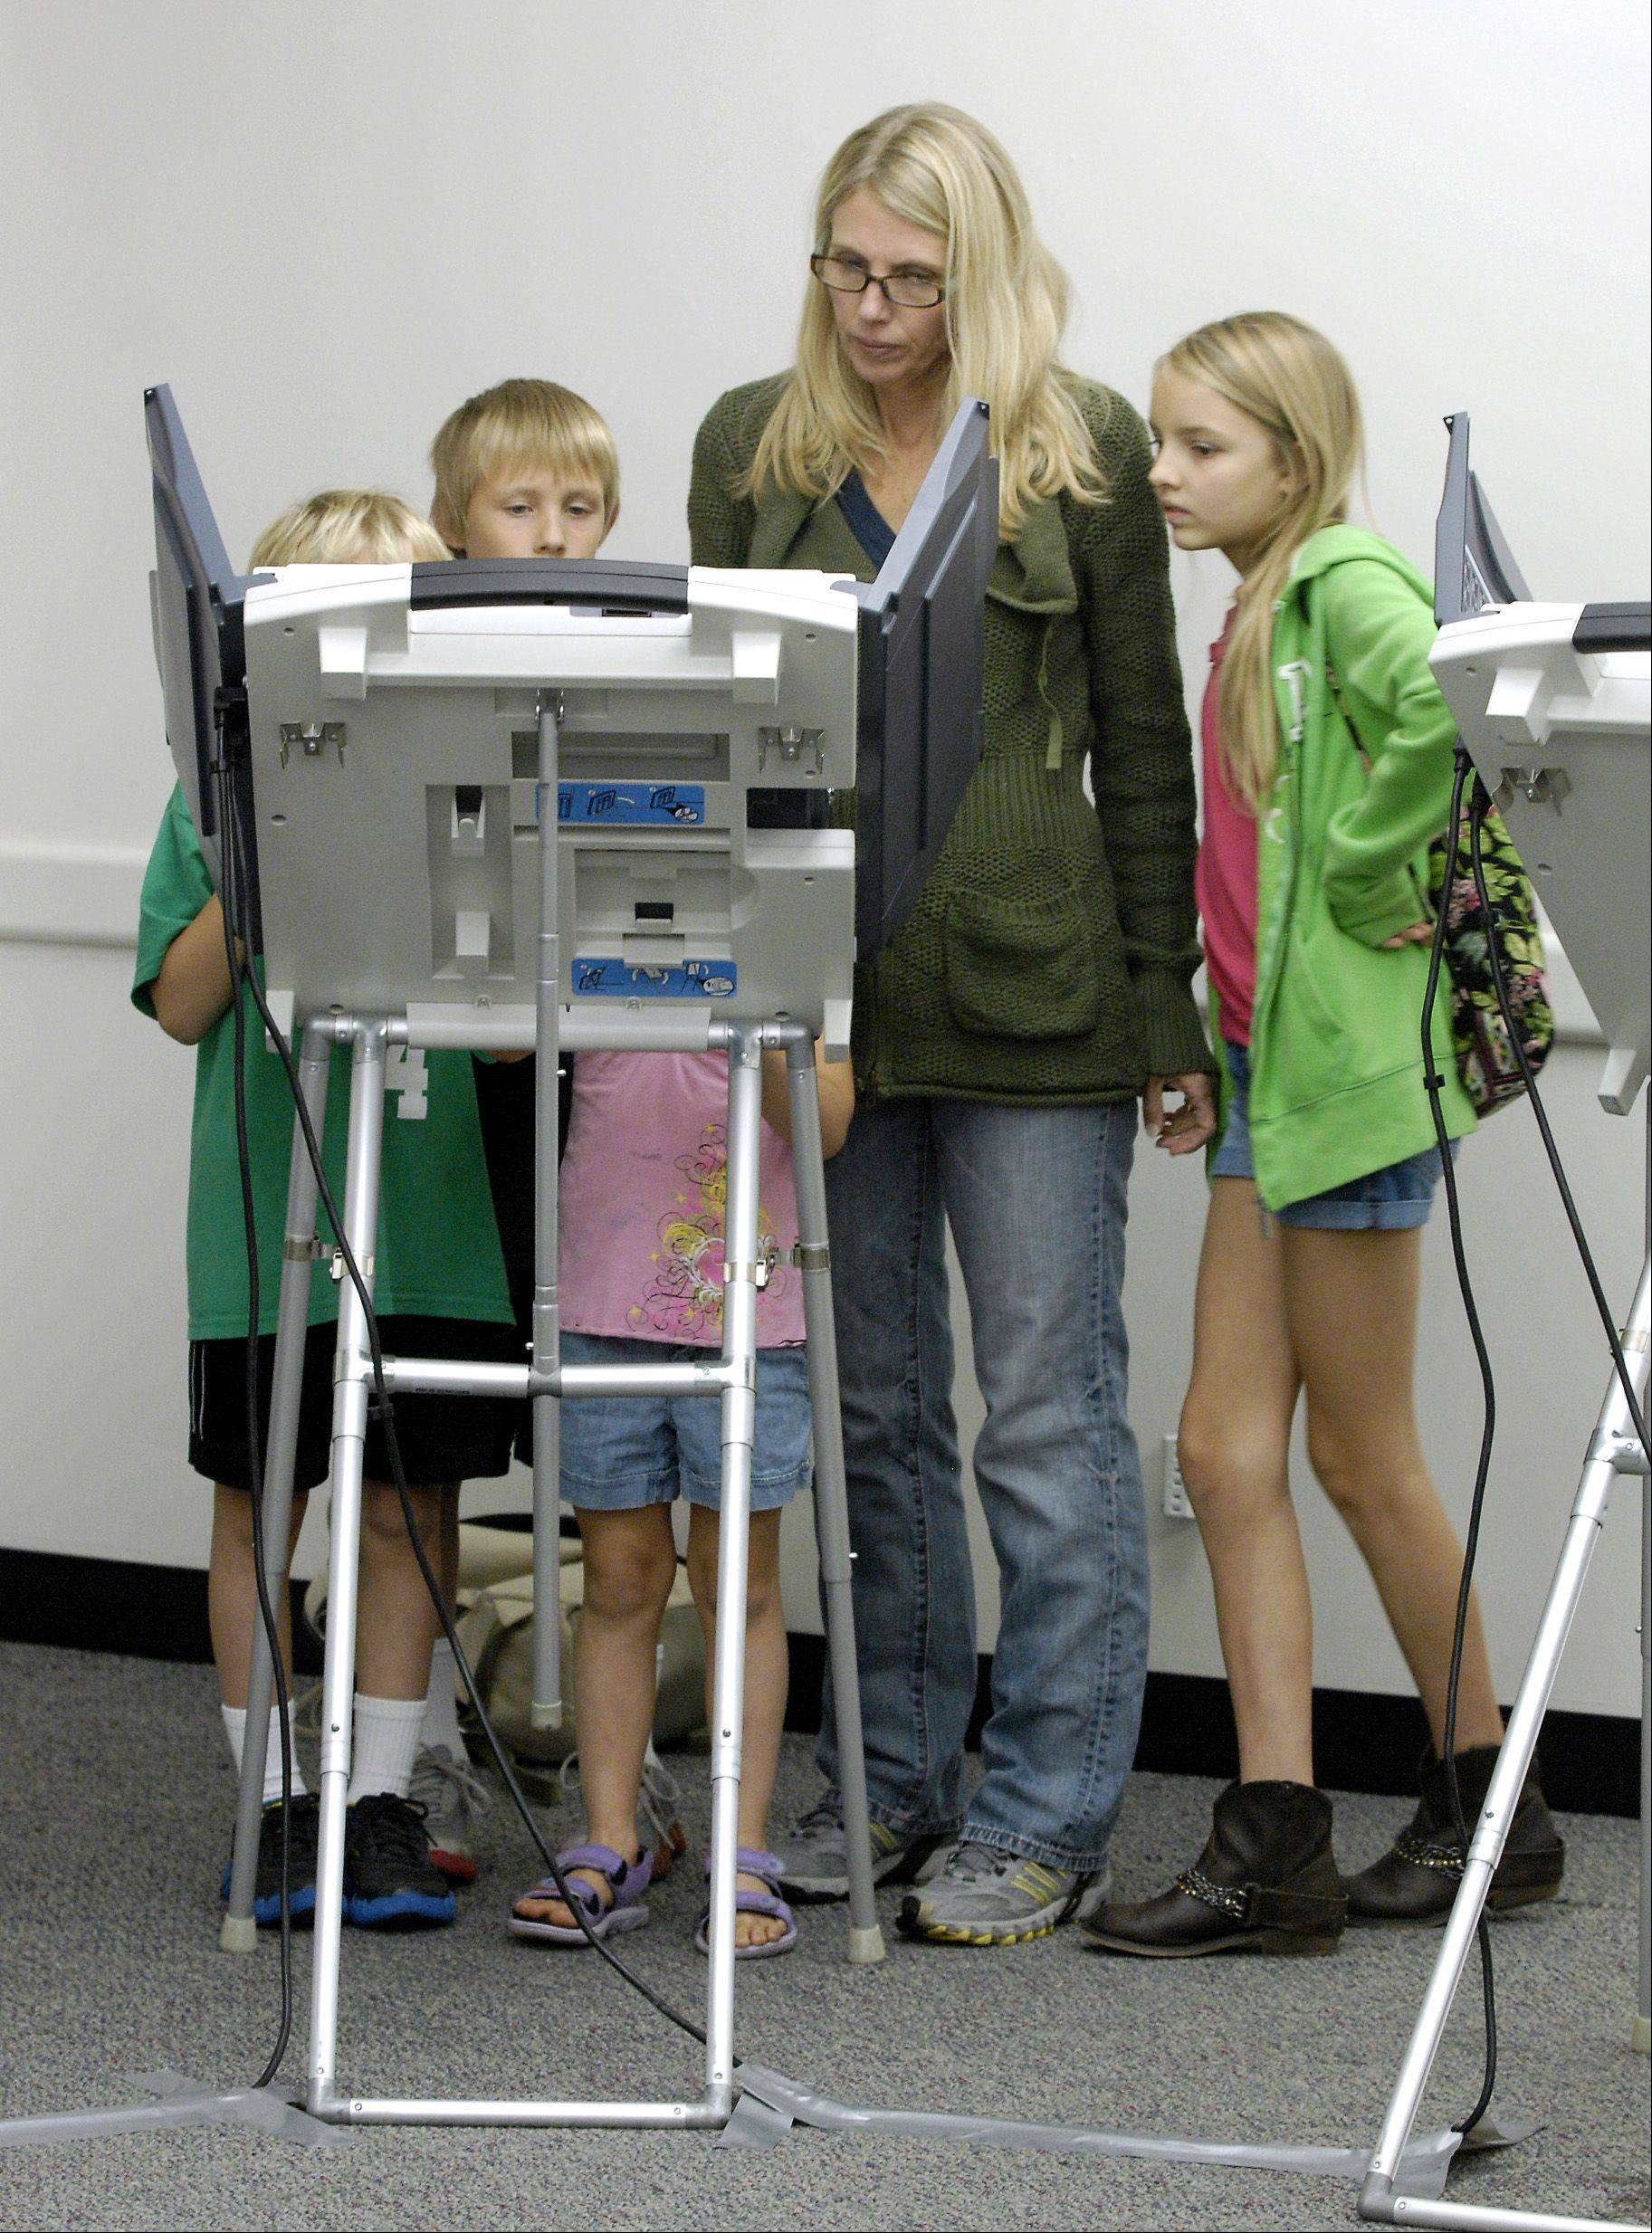 Laura Penosky of Wheaton casts her early ballot Monday at the DuPage County government building in Wheaton with her children Daniel, 9, Liberty, 11, Patrick, 7, and Dawn, 5, by her side. Penosky�s 21-year-old daughter, Lydia, voted for the first time at another booth.